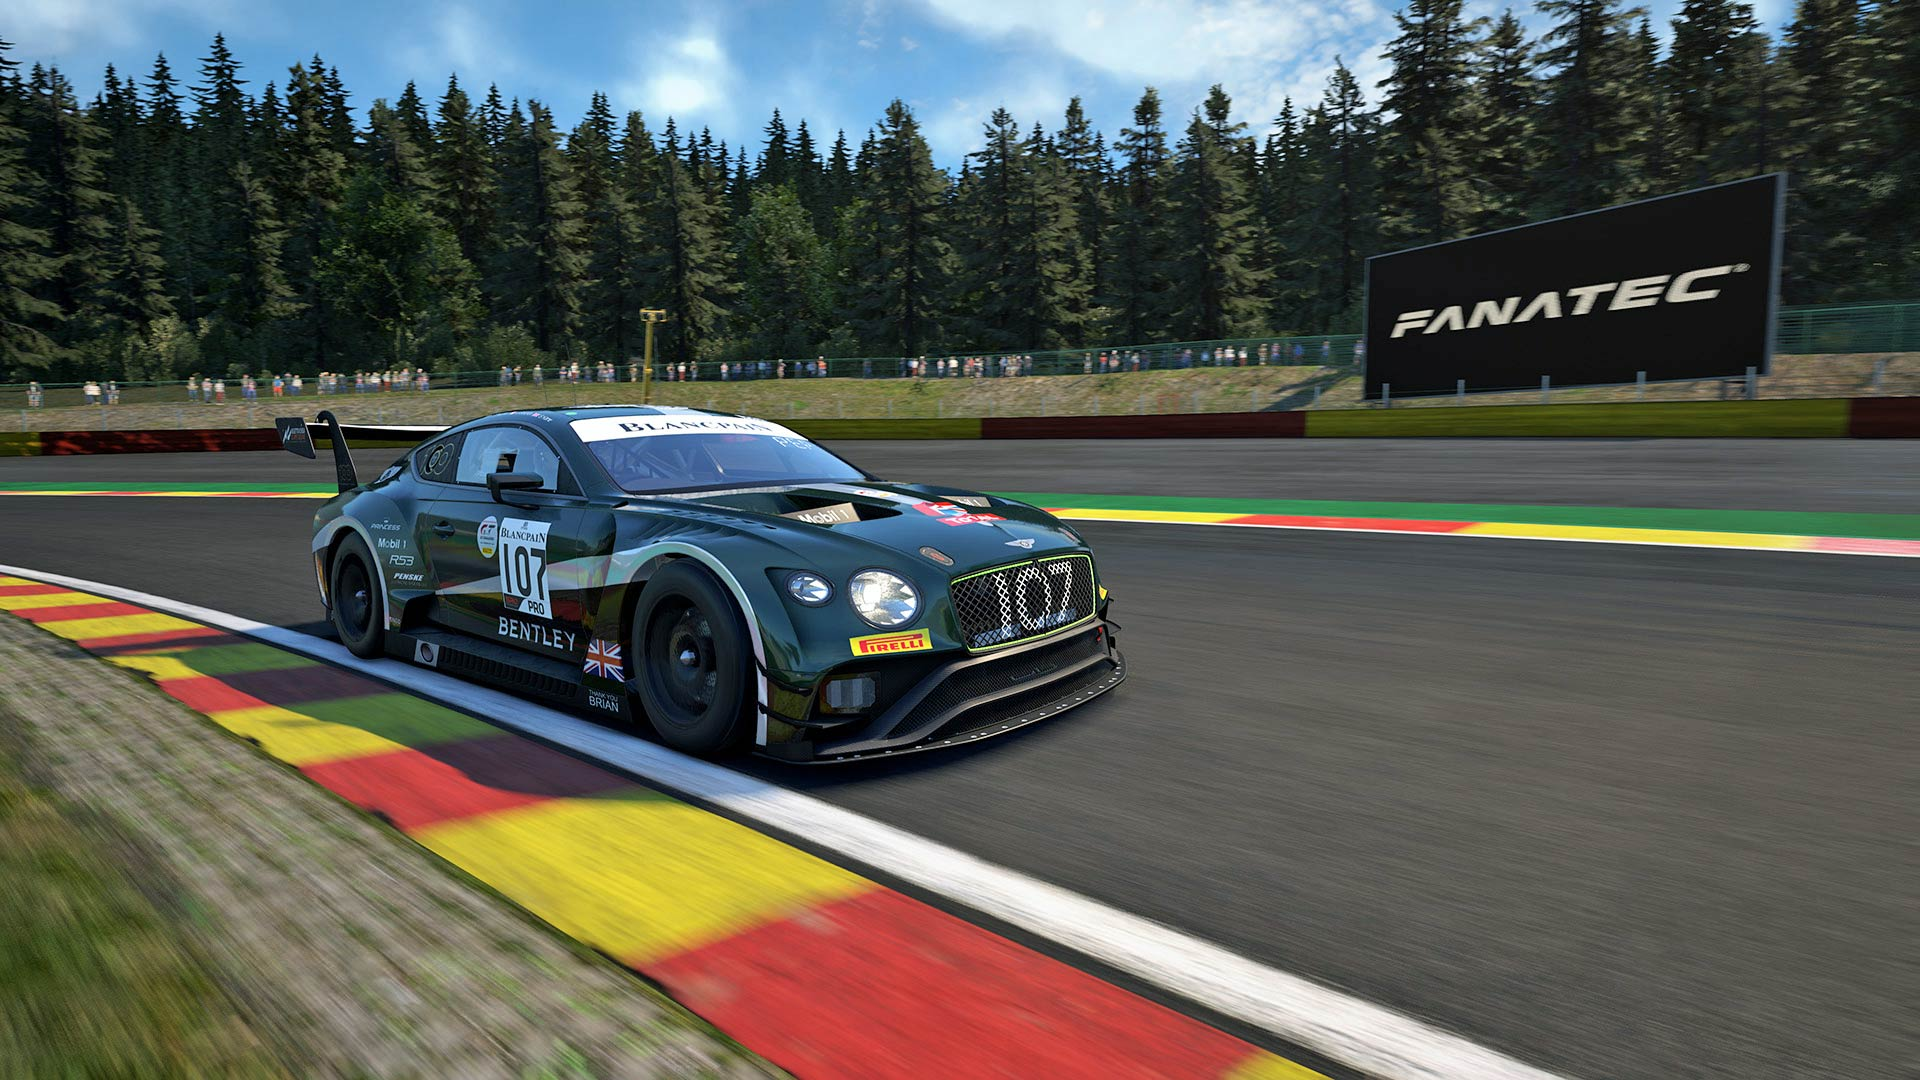 Bentley SRO Charity Esports Race